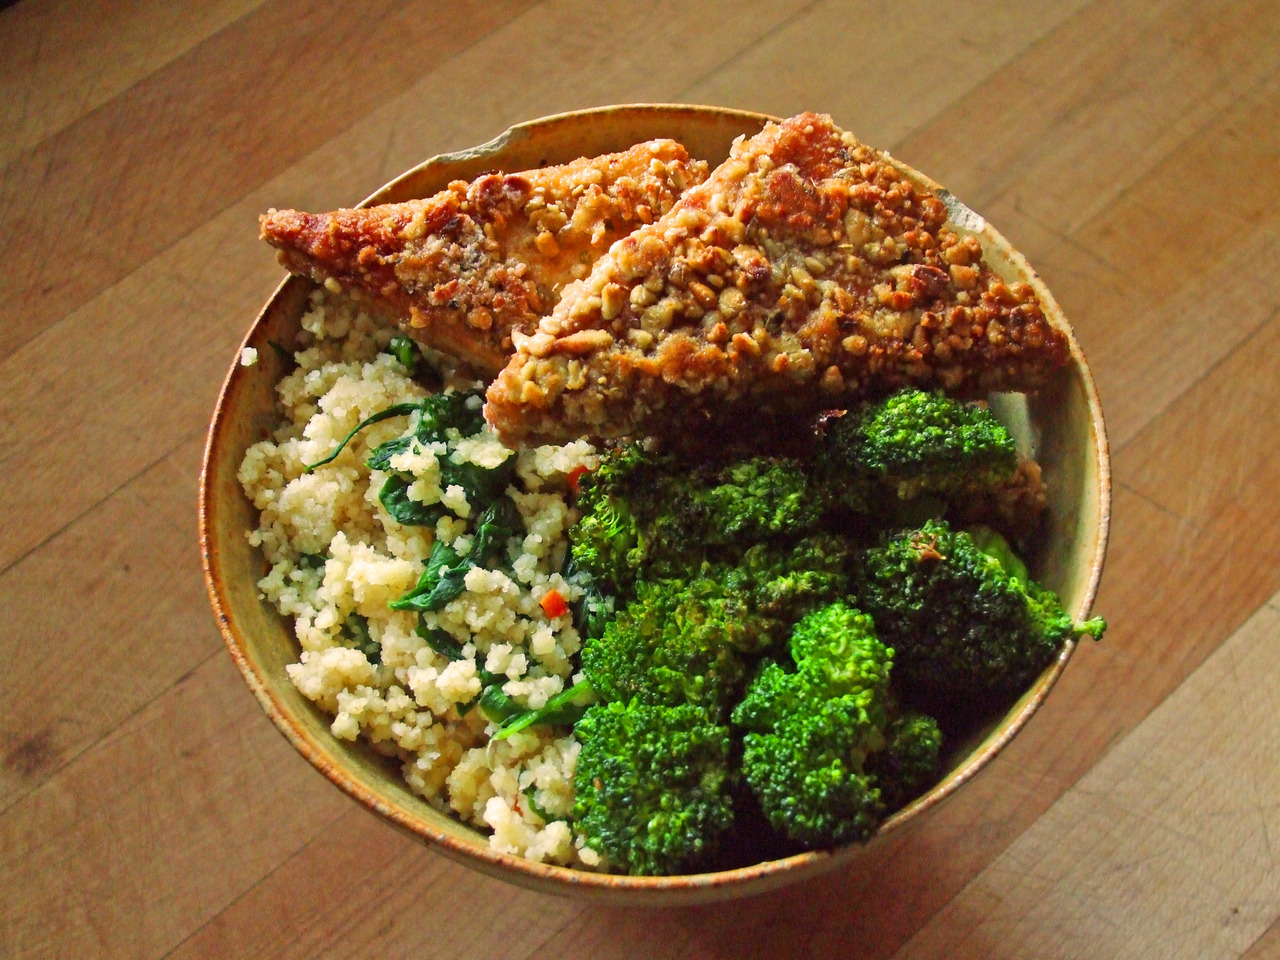 garden-of-vegan:  whole wheat couscous with garlic, onion, carrot, and spinach, sunflower seed crusted tofu, and sauteed broccoli